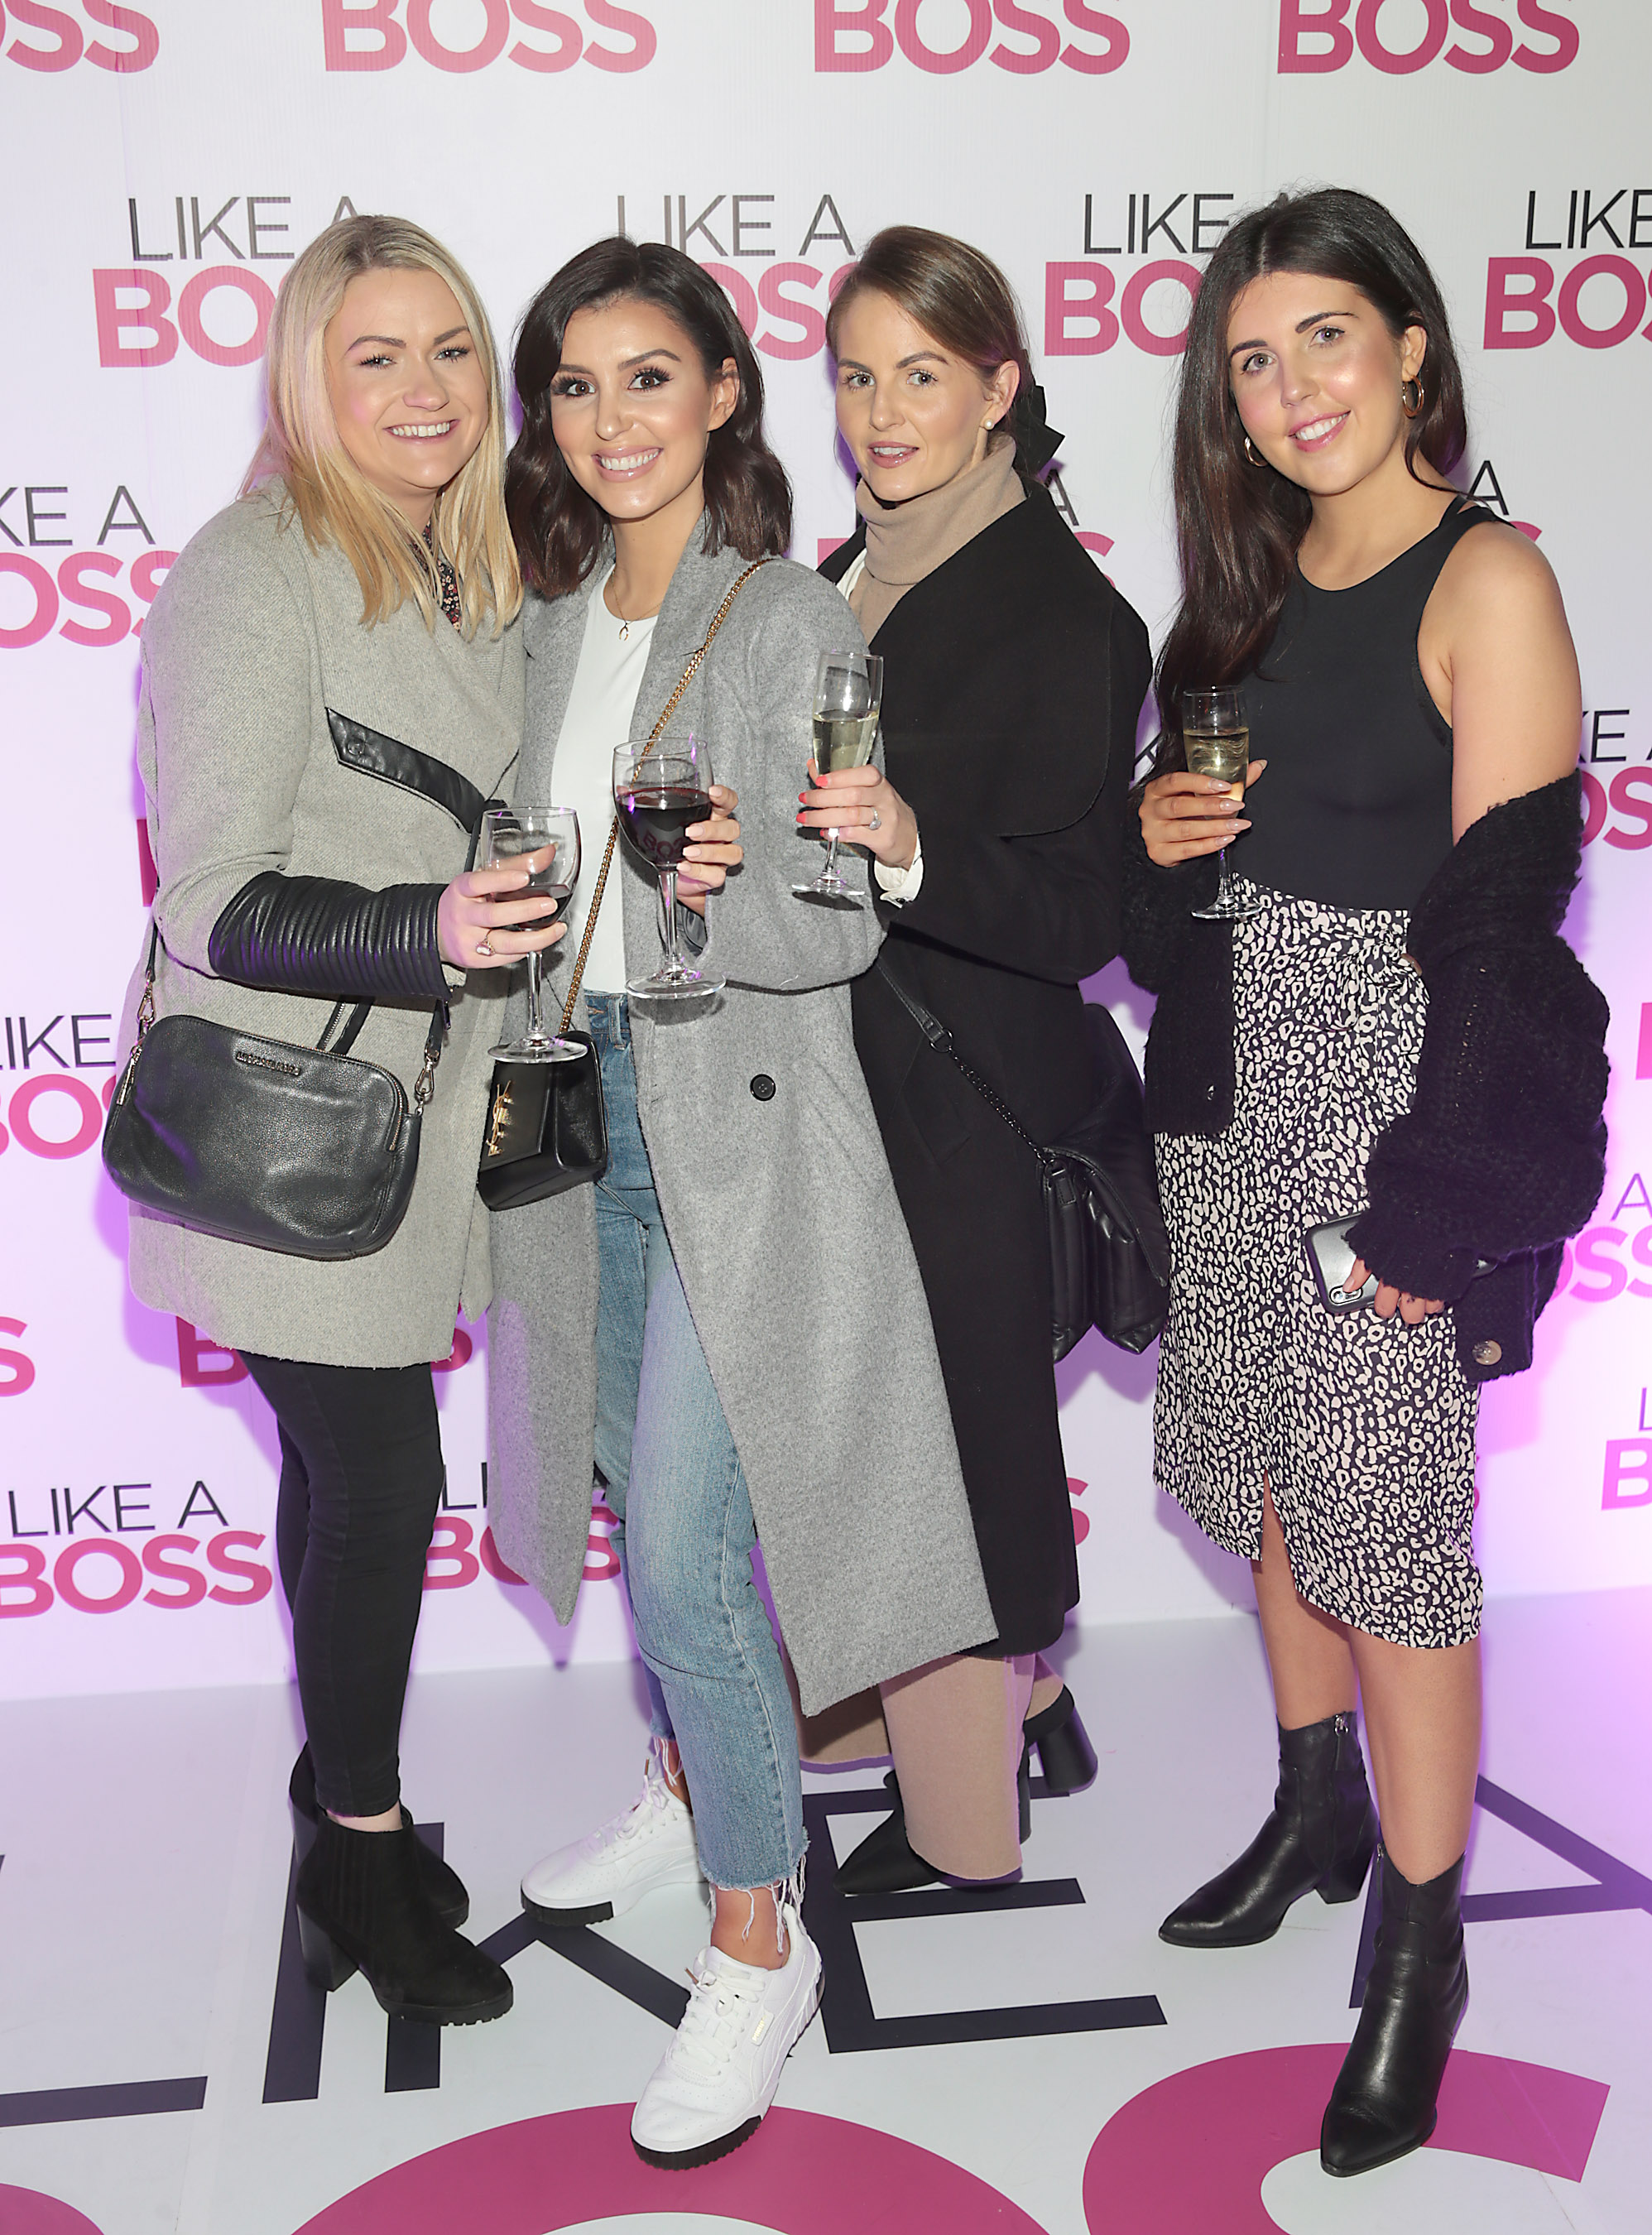 Alison Reynolds, Terrie McEvoy, Elaine McConnell and Alison McSweeney at the special preview screening of Like A Boss at the Lighthouse Cinema, Dublin. Pic: Brian McEvoy